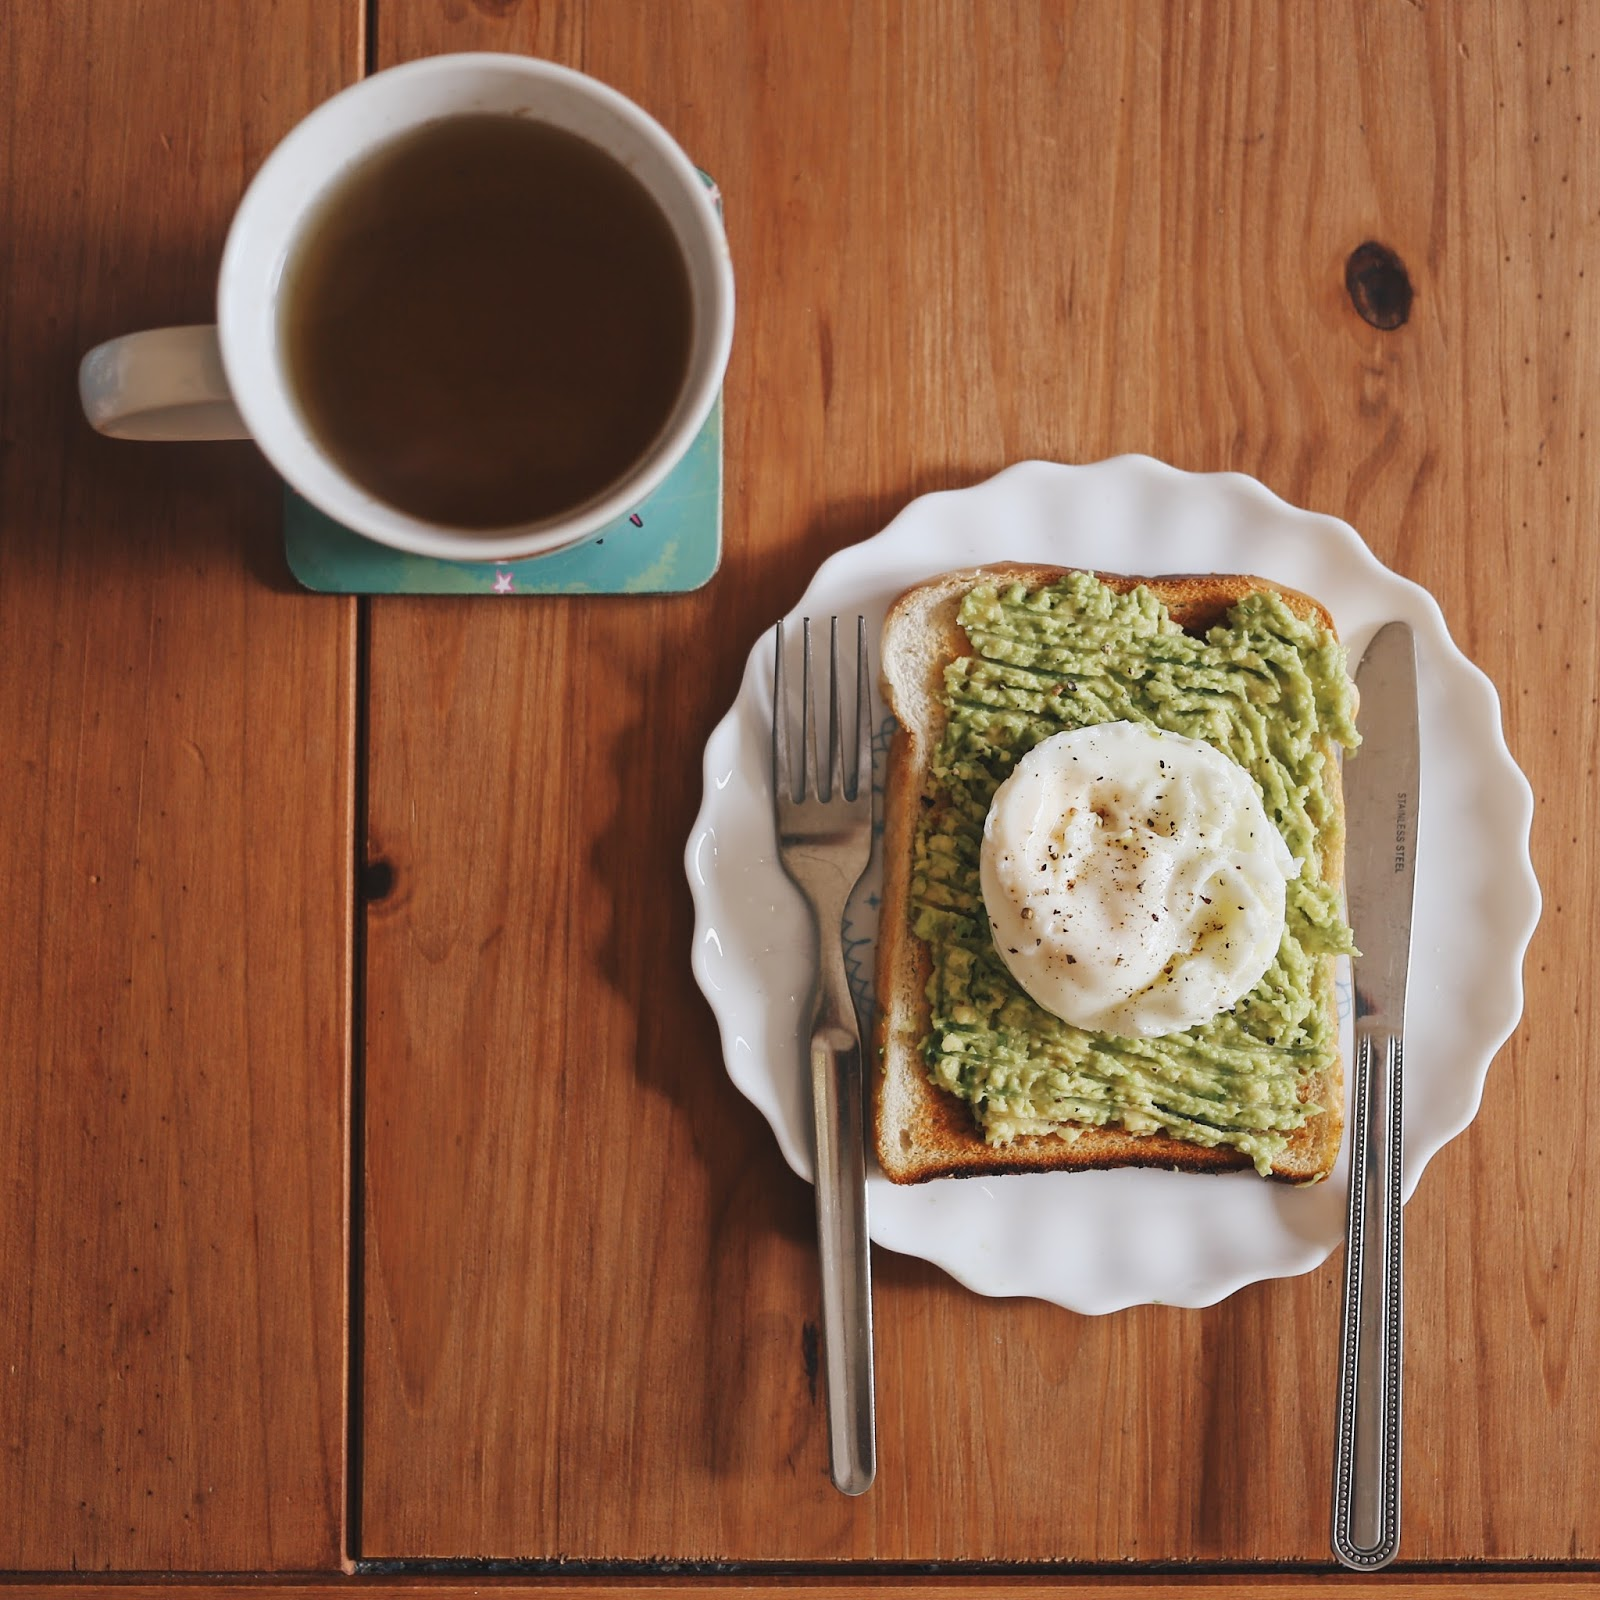 Green Tea, Flat lay, Flatlay, Avocado, Poached Egg, Toast, Avocado on Toast, Egg on toast, Recipes, Healthy Food, On My Table, Clean Eating, Diet, Katie Writes Blog, Katie Writes,